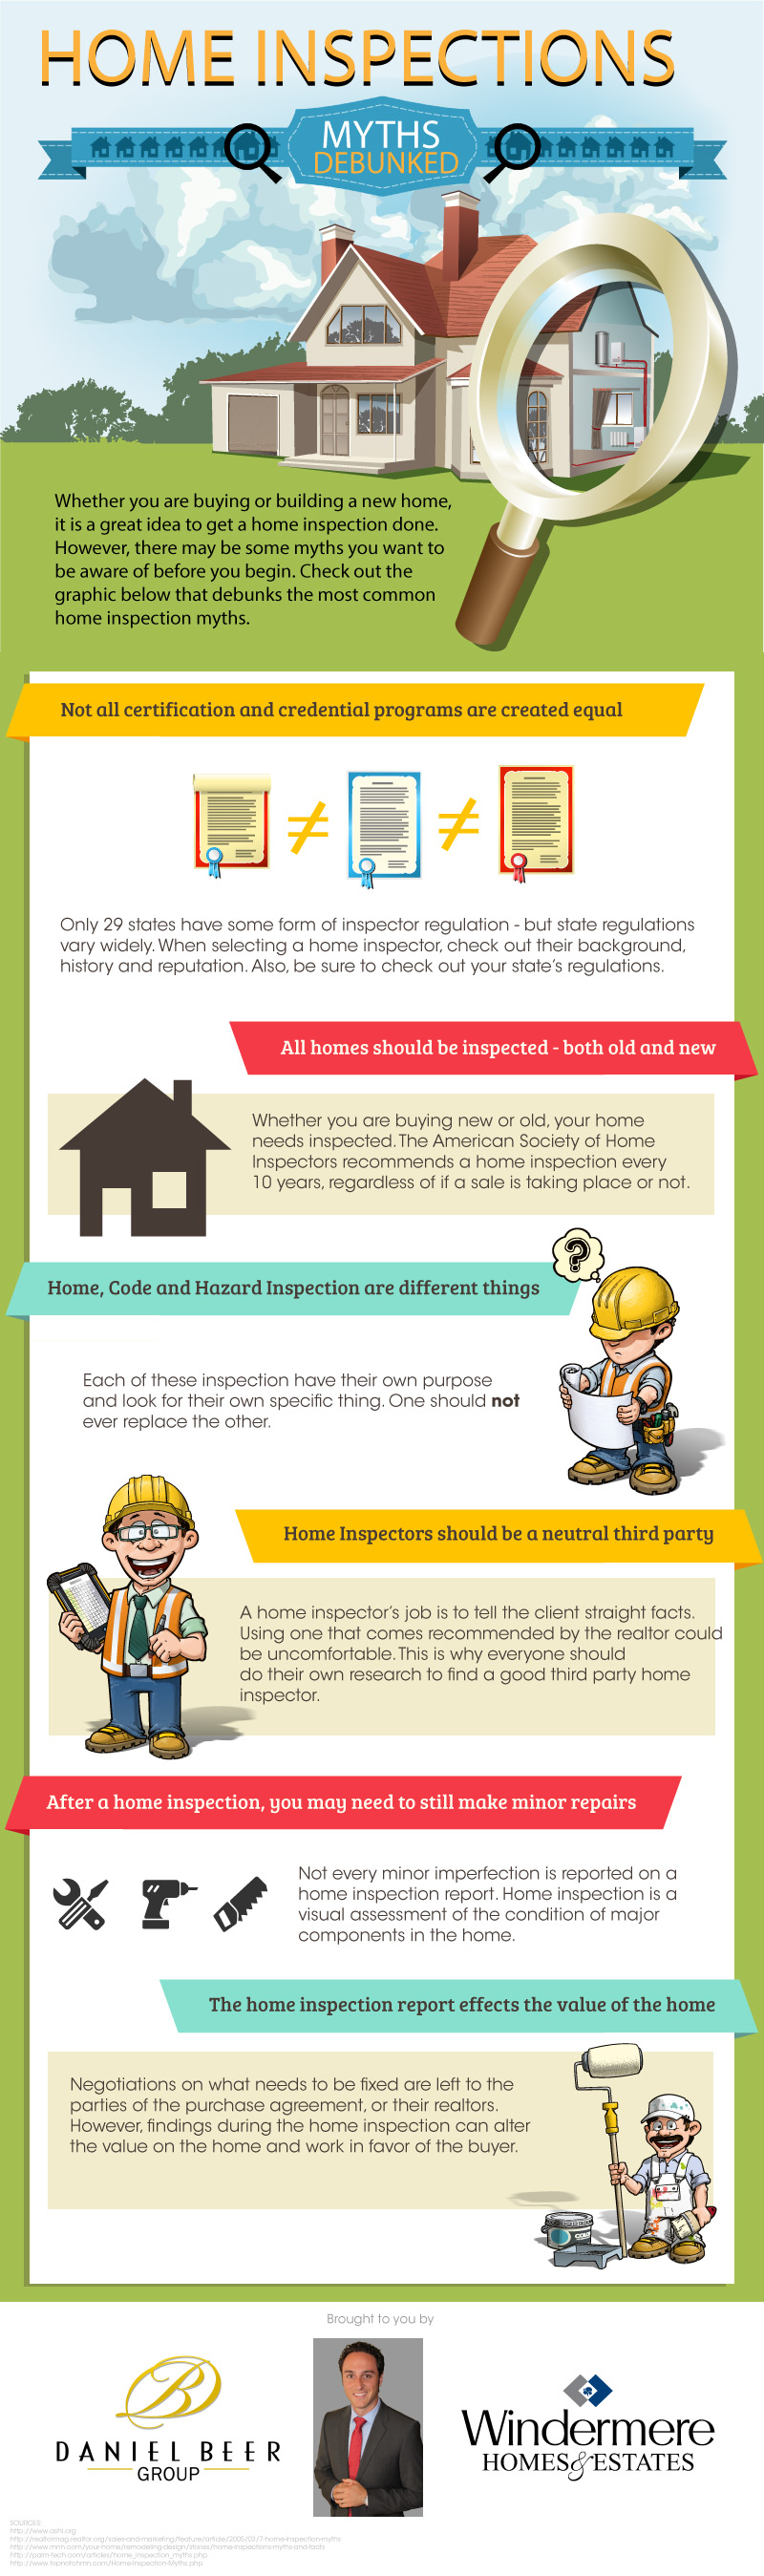 San Diego home inspection myths